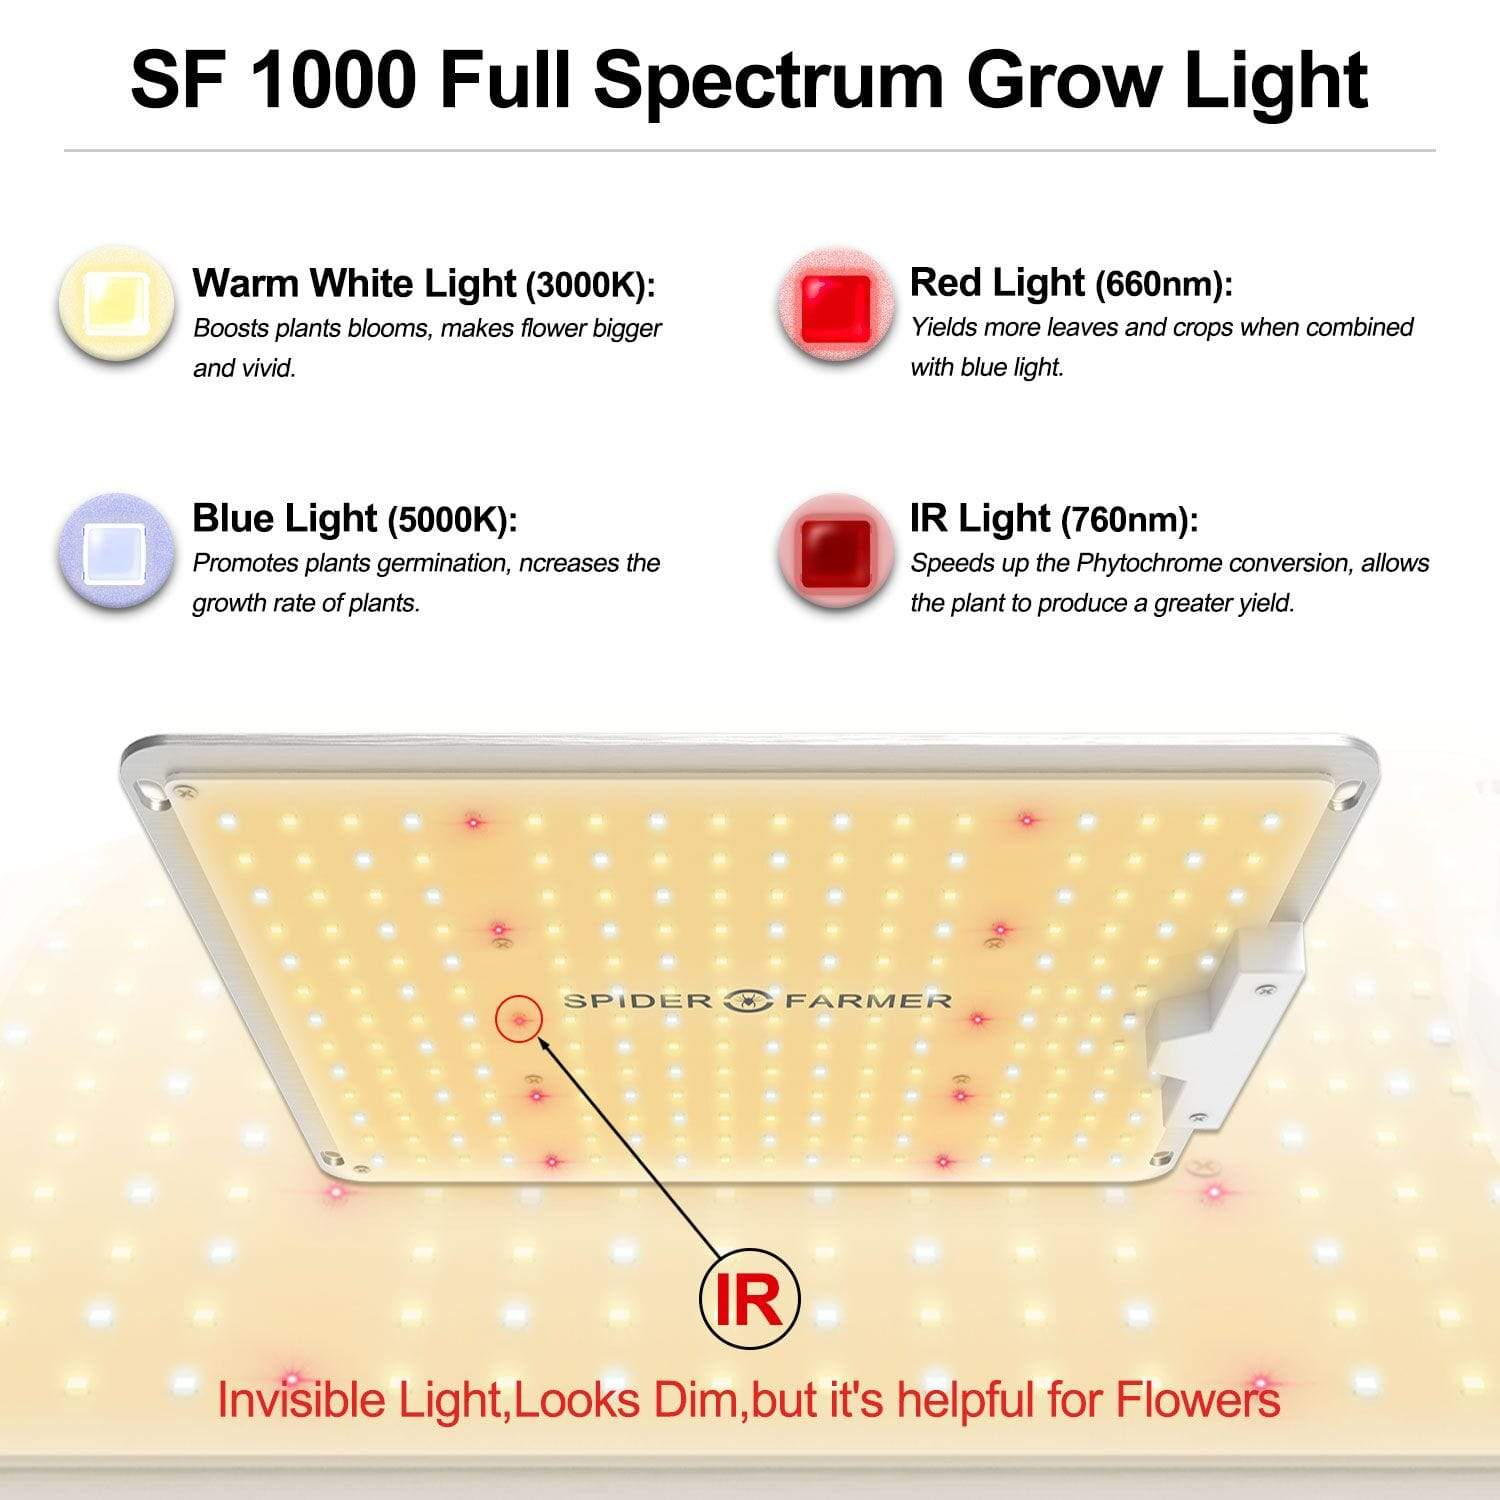 Full Spectrum Grow Light Shows all spectrum colours White Blue Red & Infrra Red spider farmer Spider Farmer sf4000 SF4000 sf2000 SF2000 & SF1000 sf1000  spiderfarmer LED Grow Lights UK Official Partner Supplier/Retailer